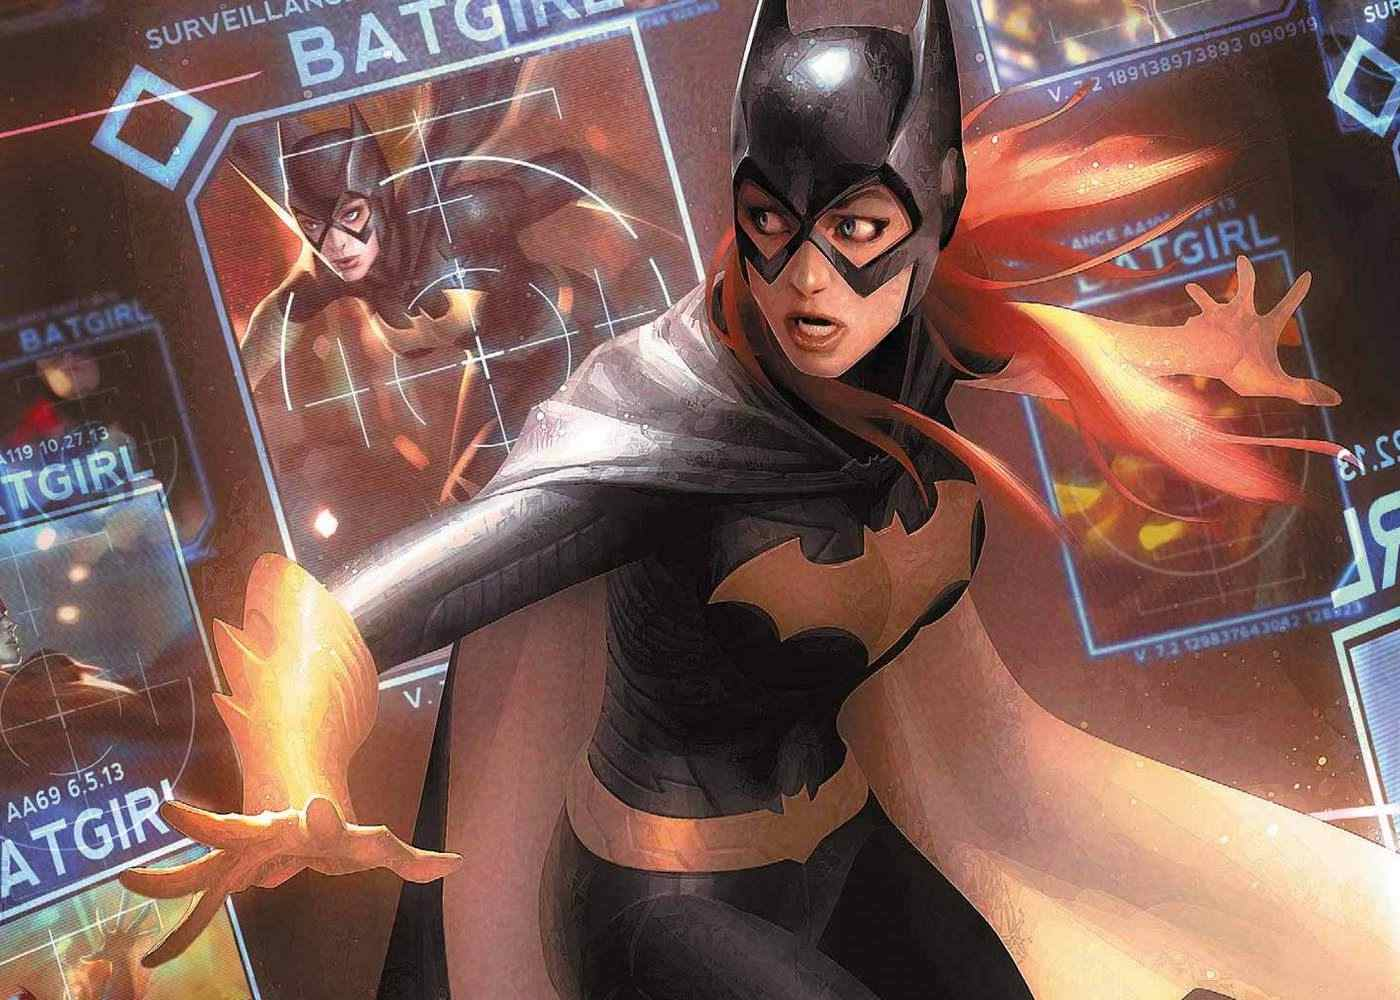 Batgirl Screenwriter Gives an Update on the Movie